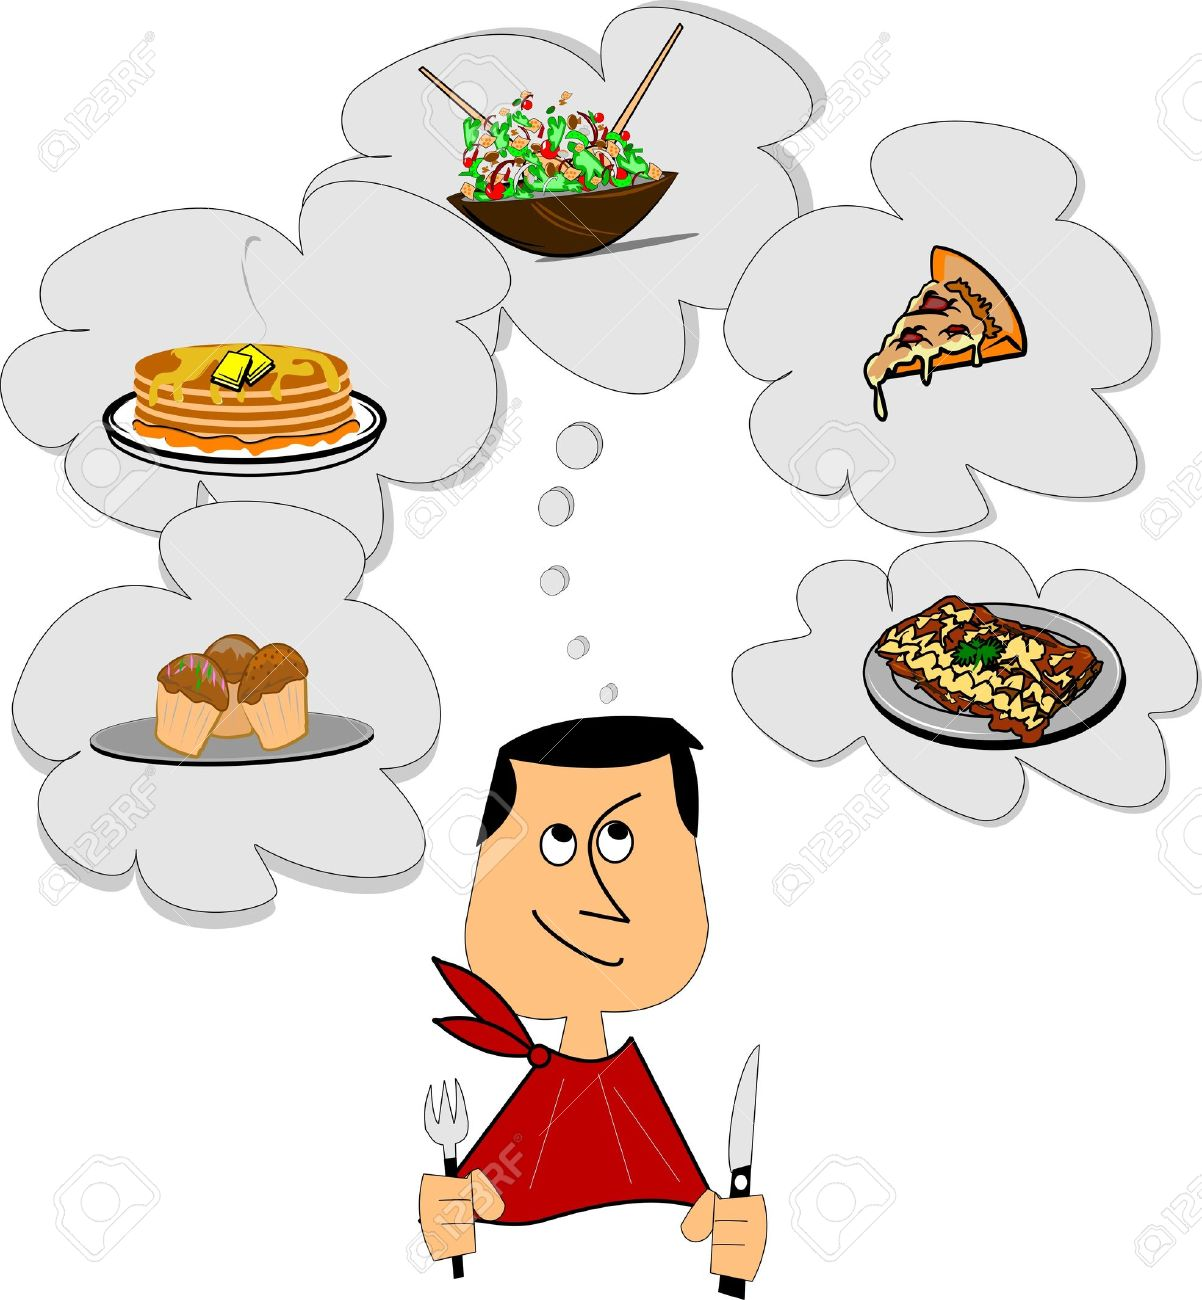 Image result for thinking food about